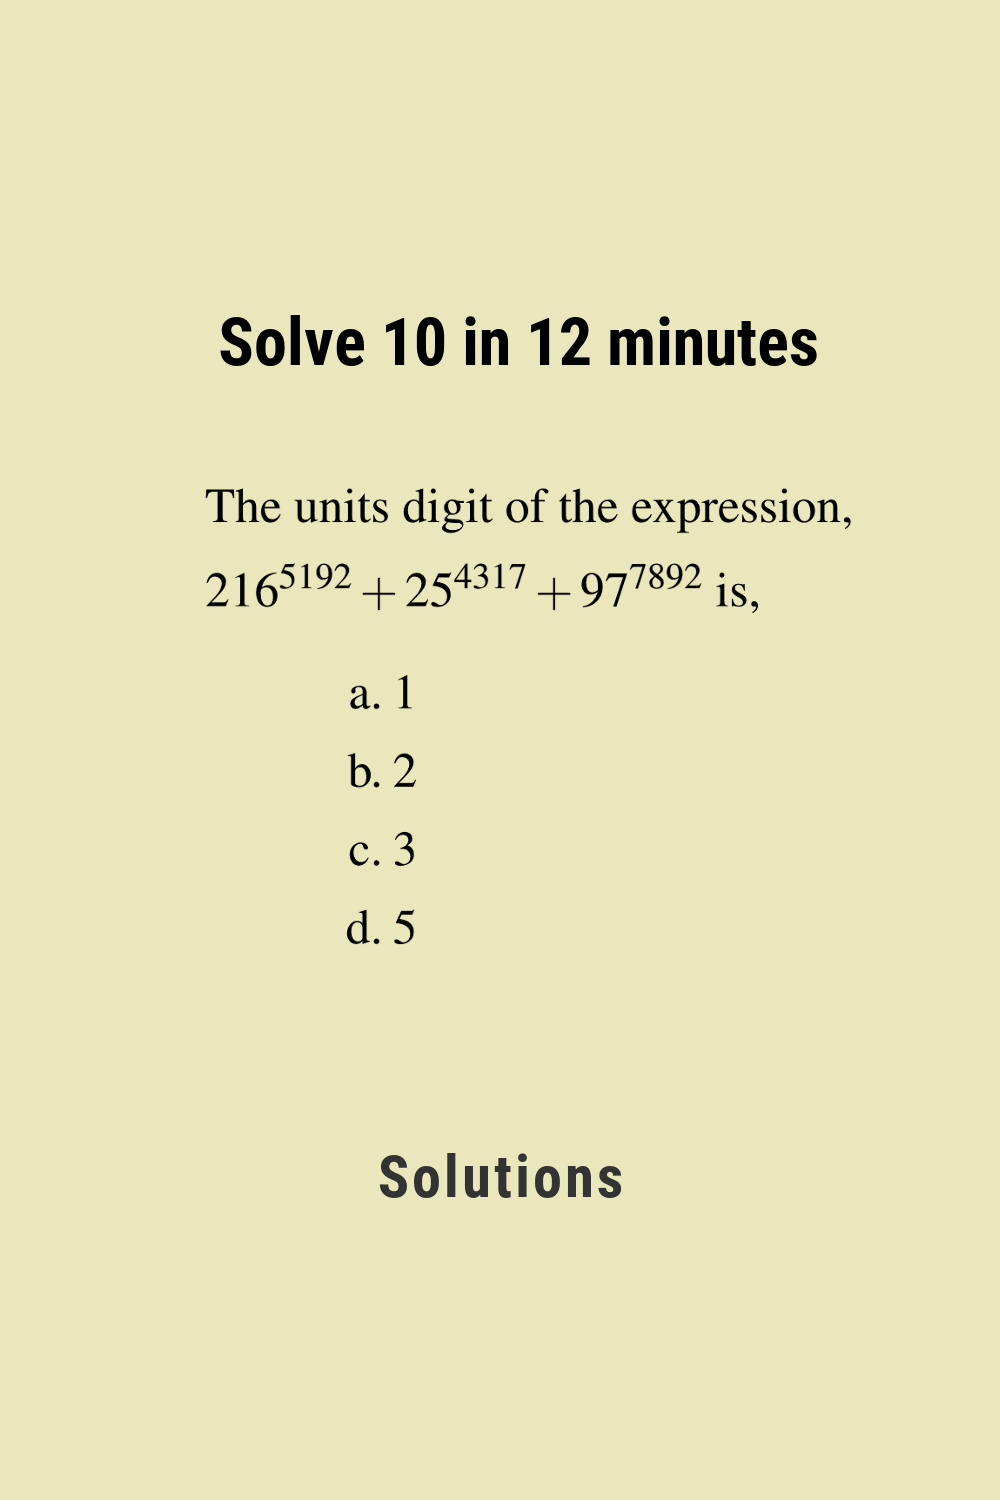 Pin On Competitive Test Questions Solutions Guidelines Tutorials Maths On Ssccgl Wbcs Bankpo [ 1500 x 1000 Pixel ]